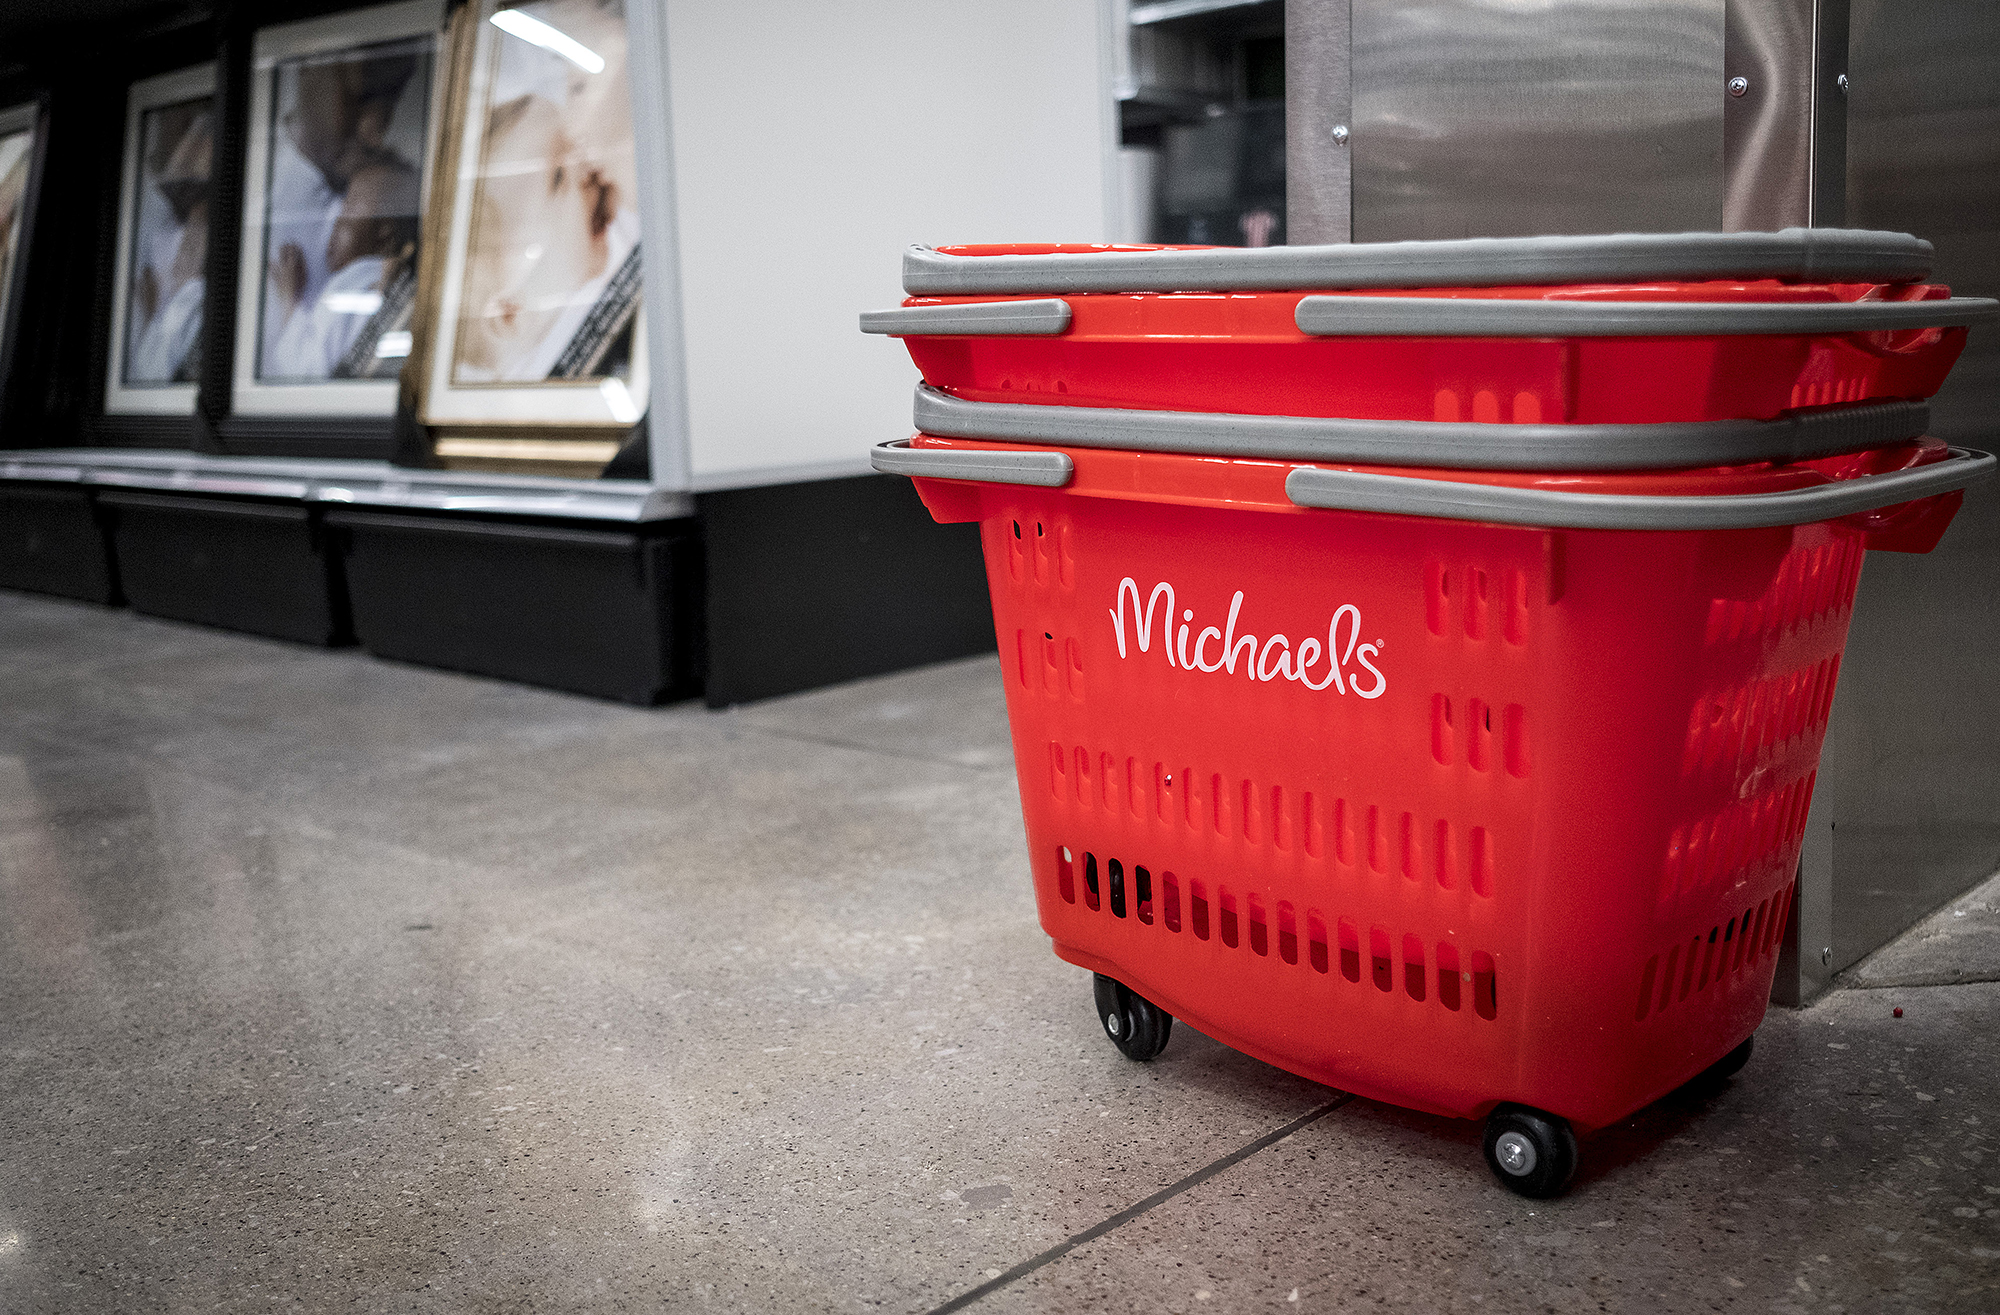 Private equity firm acquires Michaels in $5 billion deal